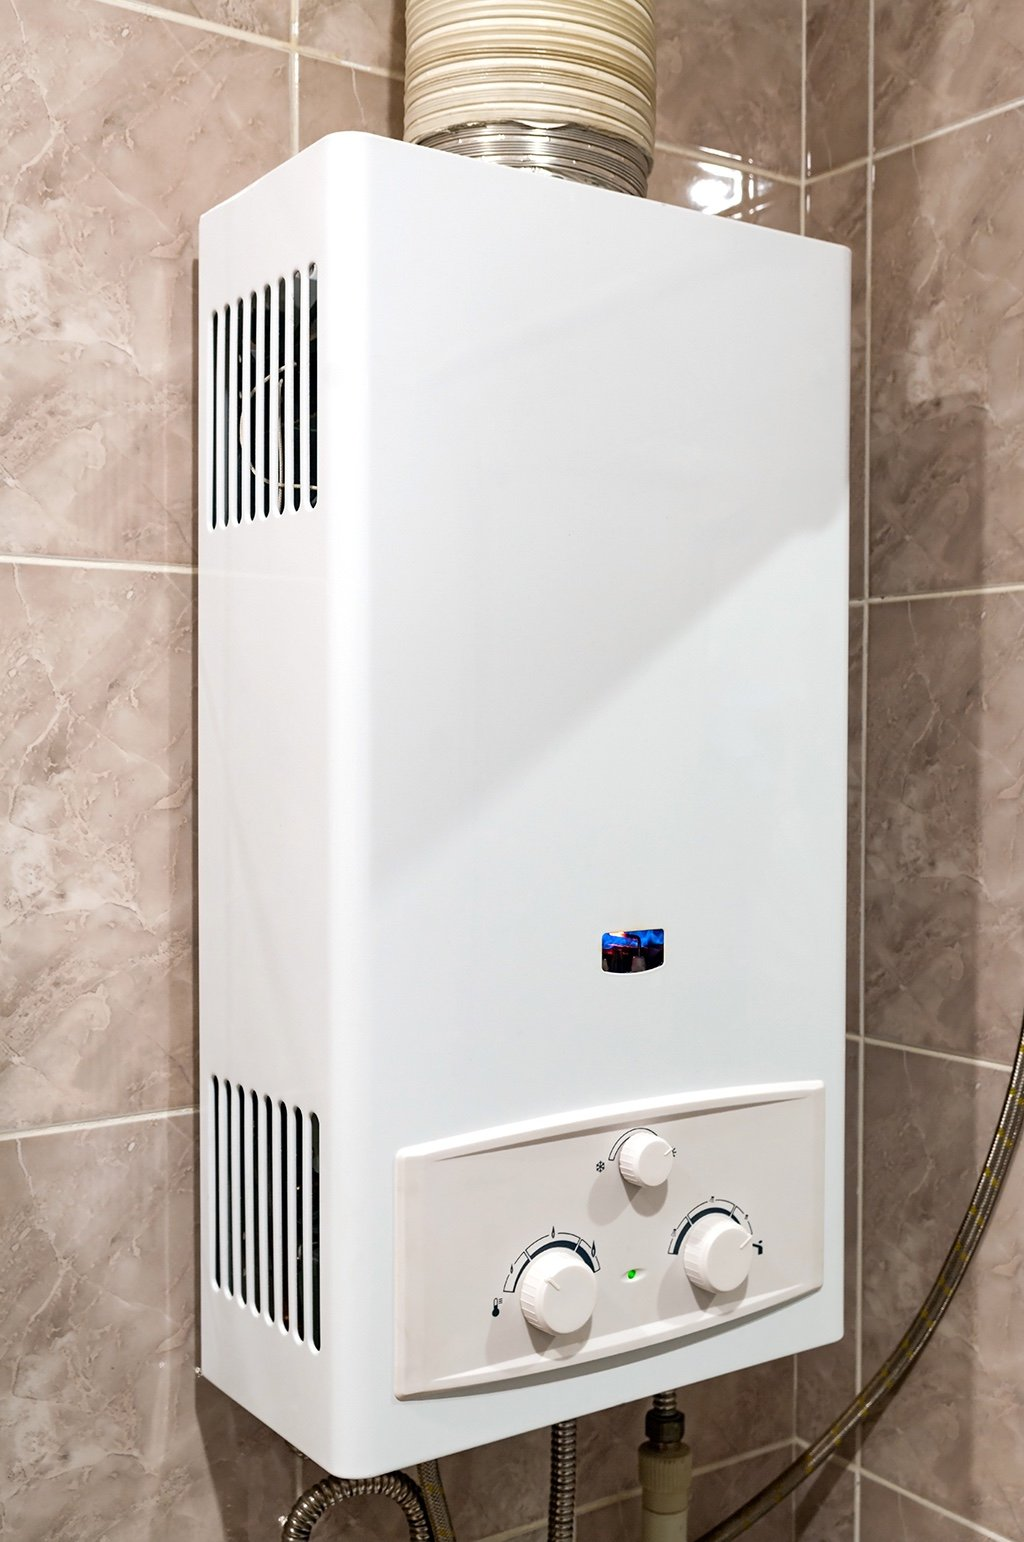 Electric Hot Water Heaters How Do We Identify An Electric Water Heater